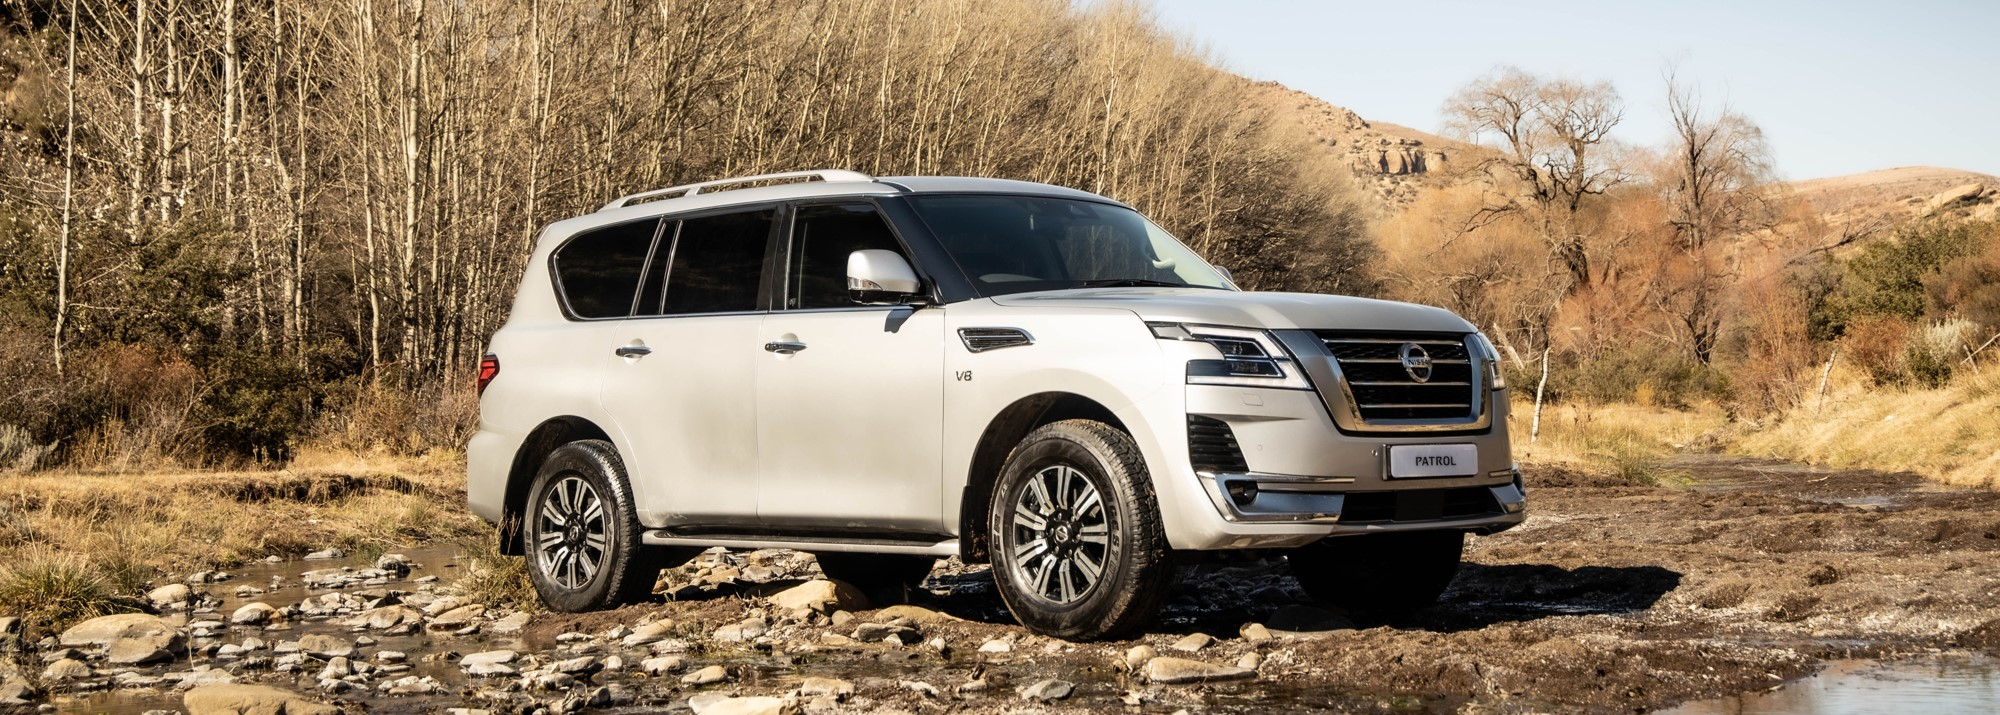 Nissan Patrol, big in all the right places